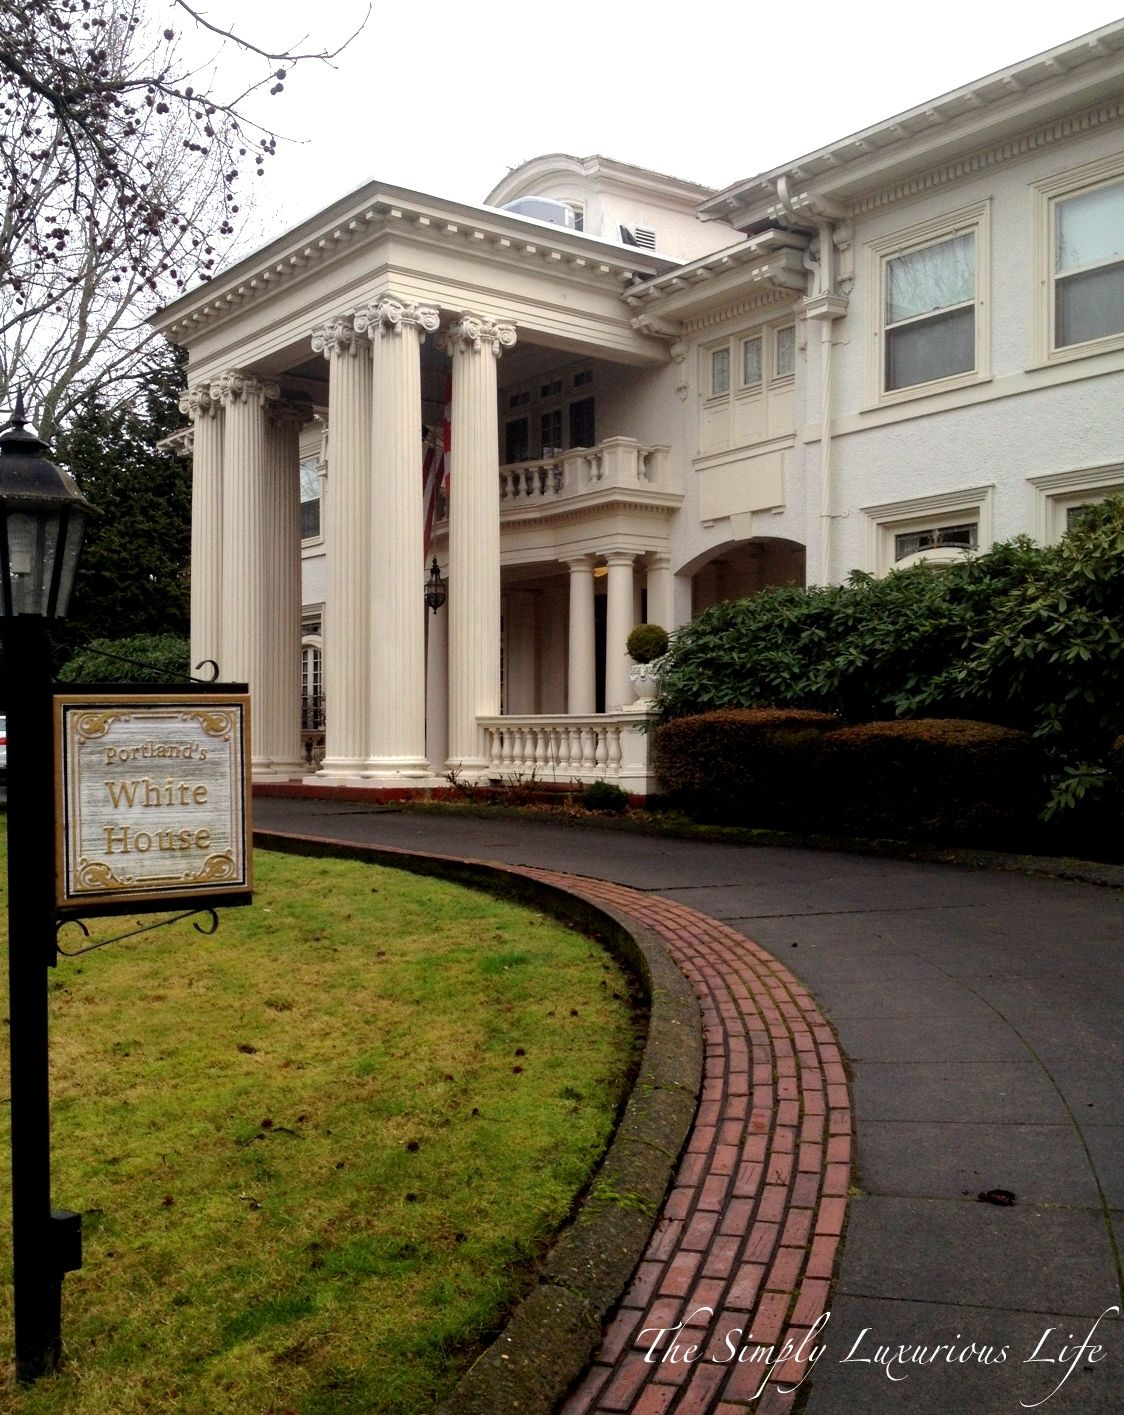 Thoughts from the Editor – Portland's White House